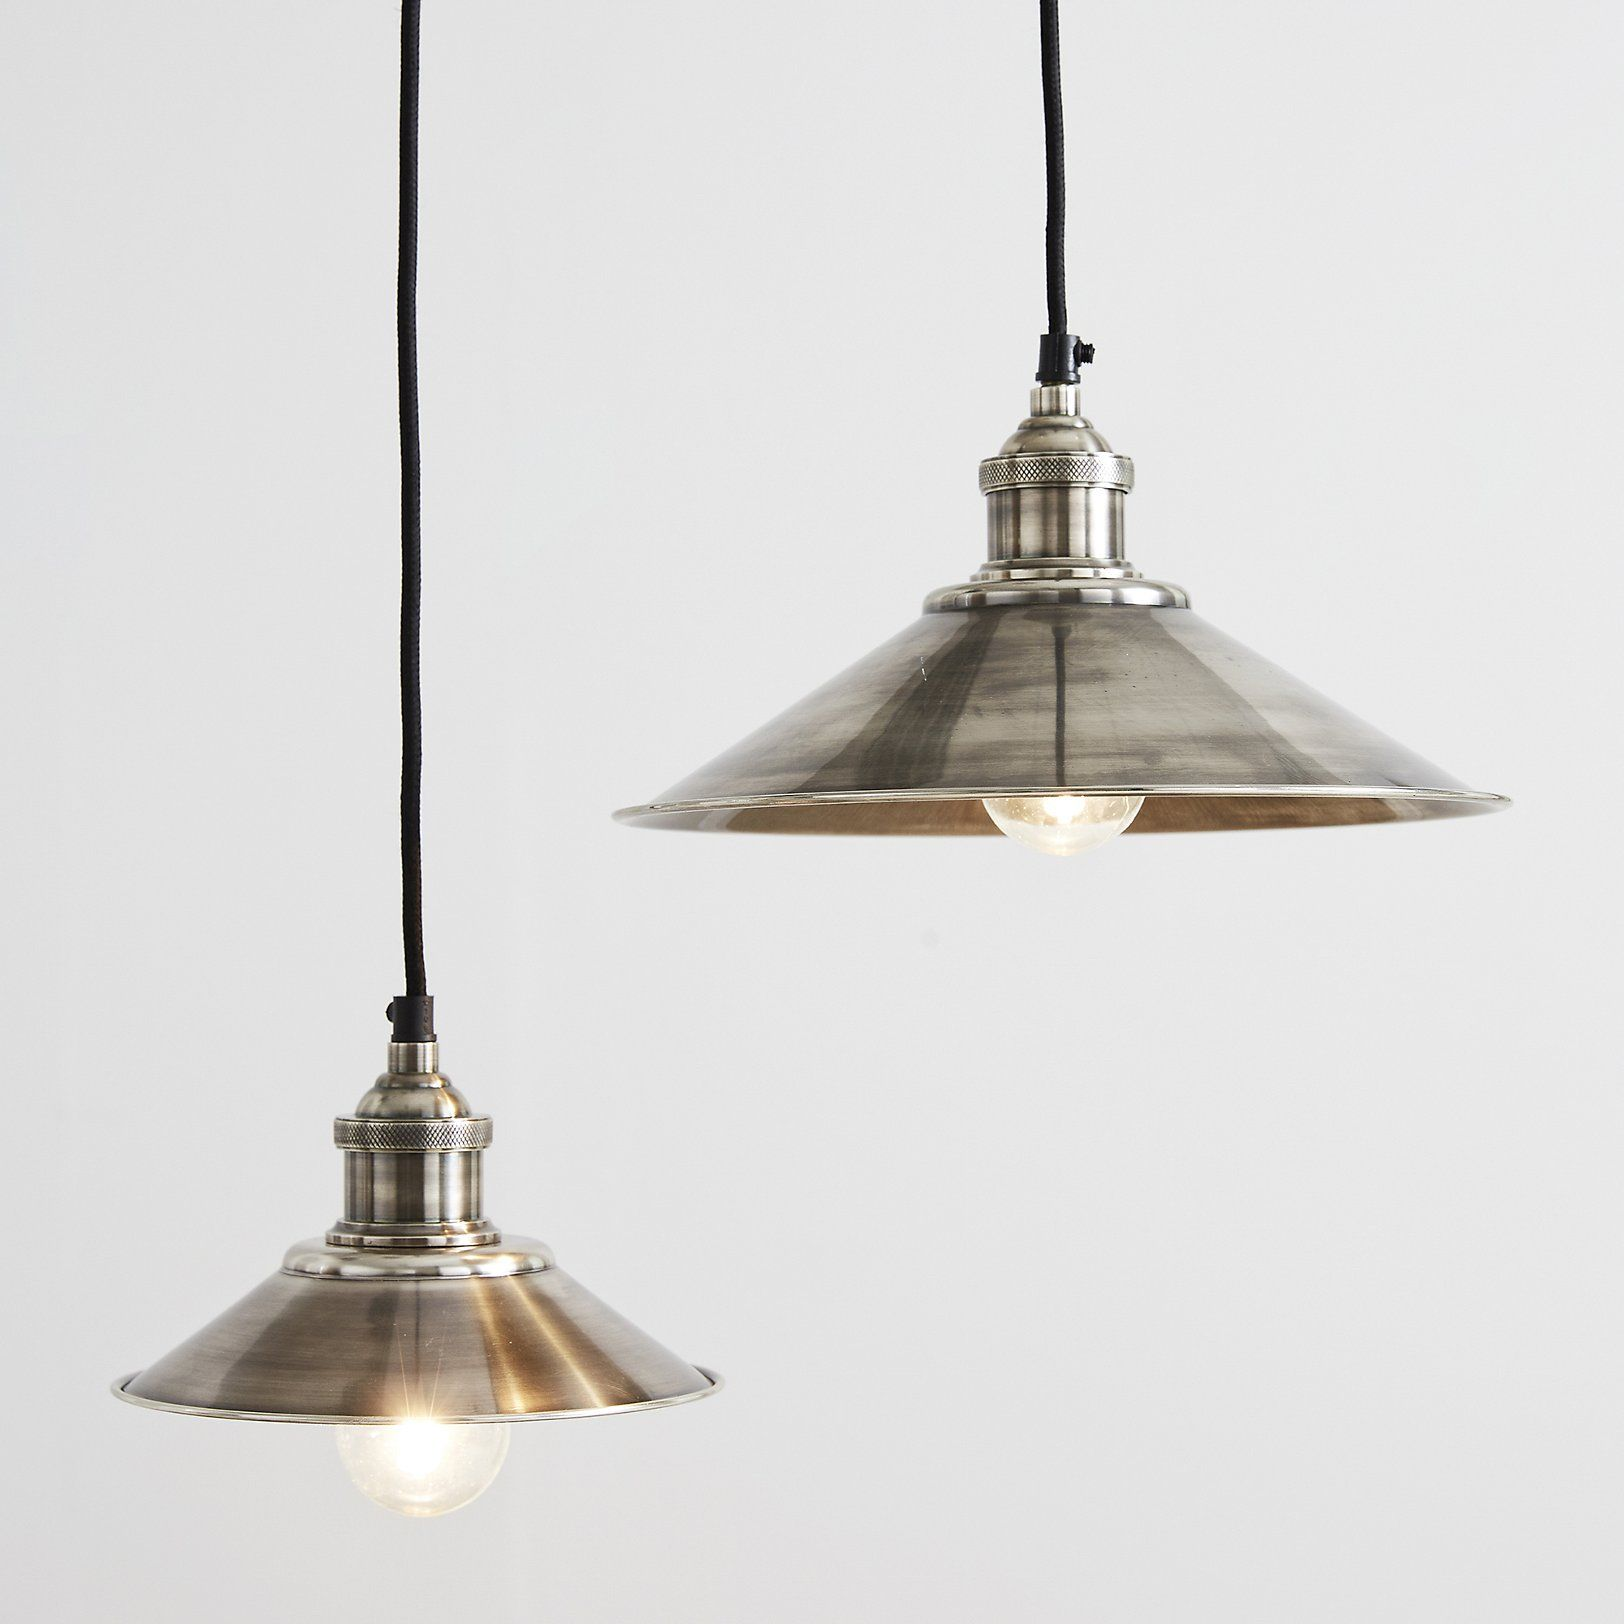 Antique Small Ceiling Light